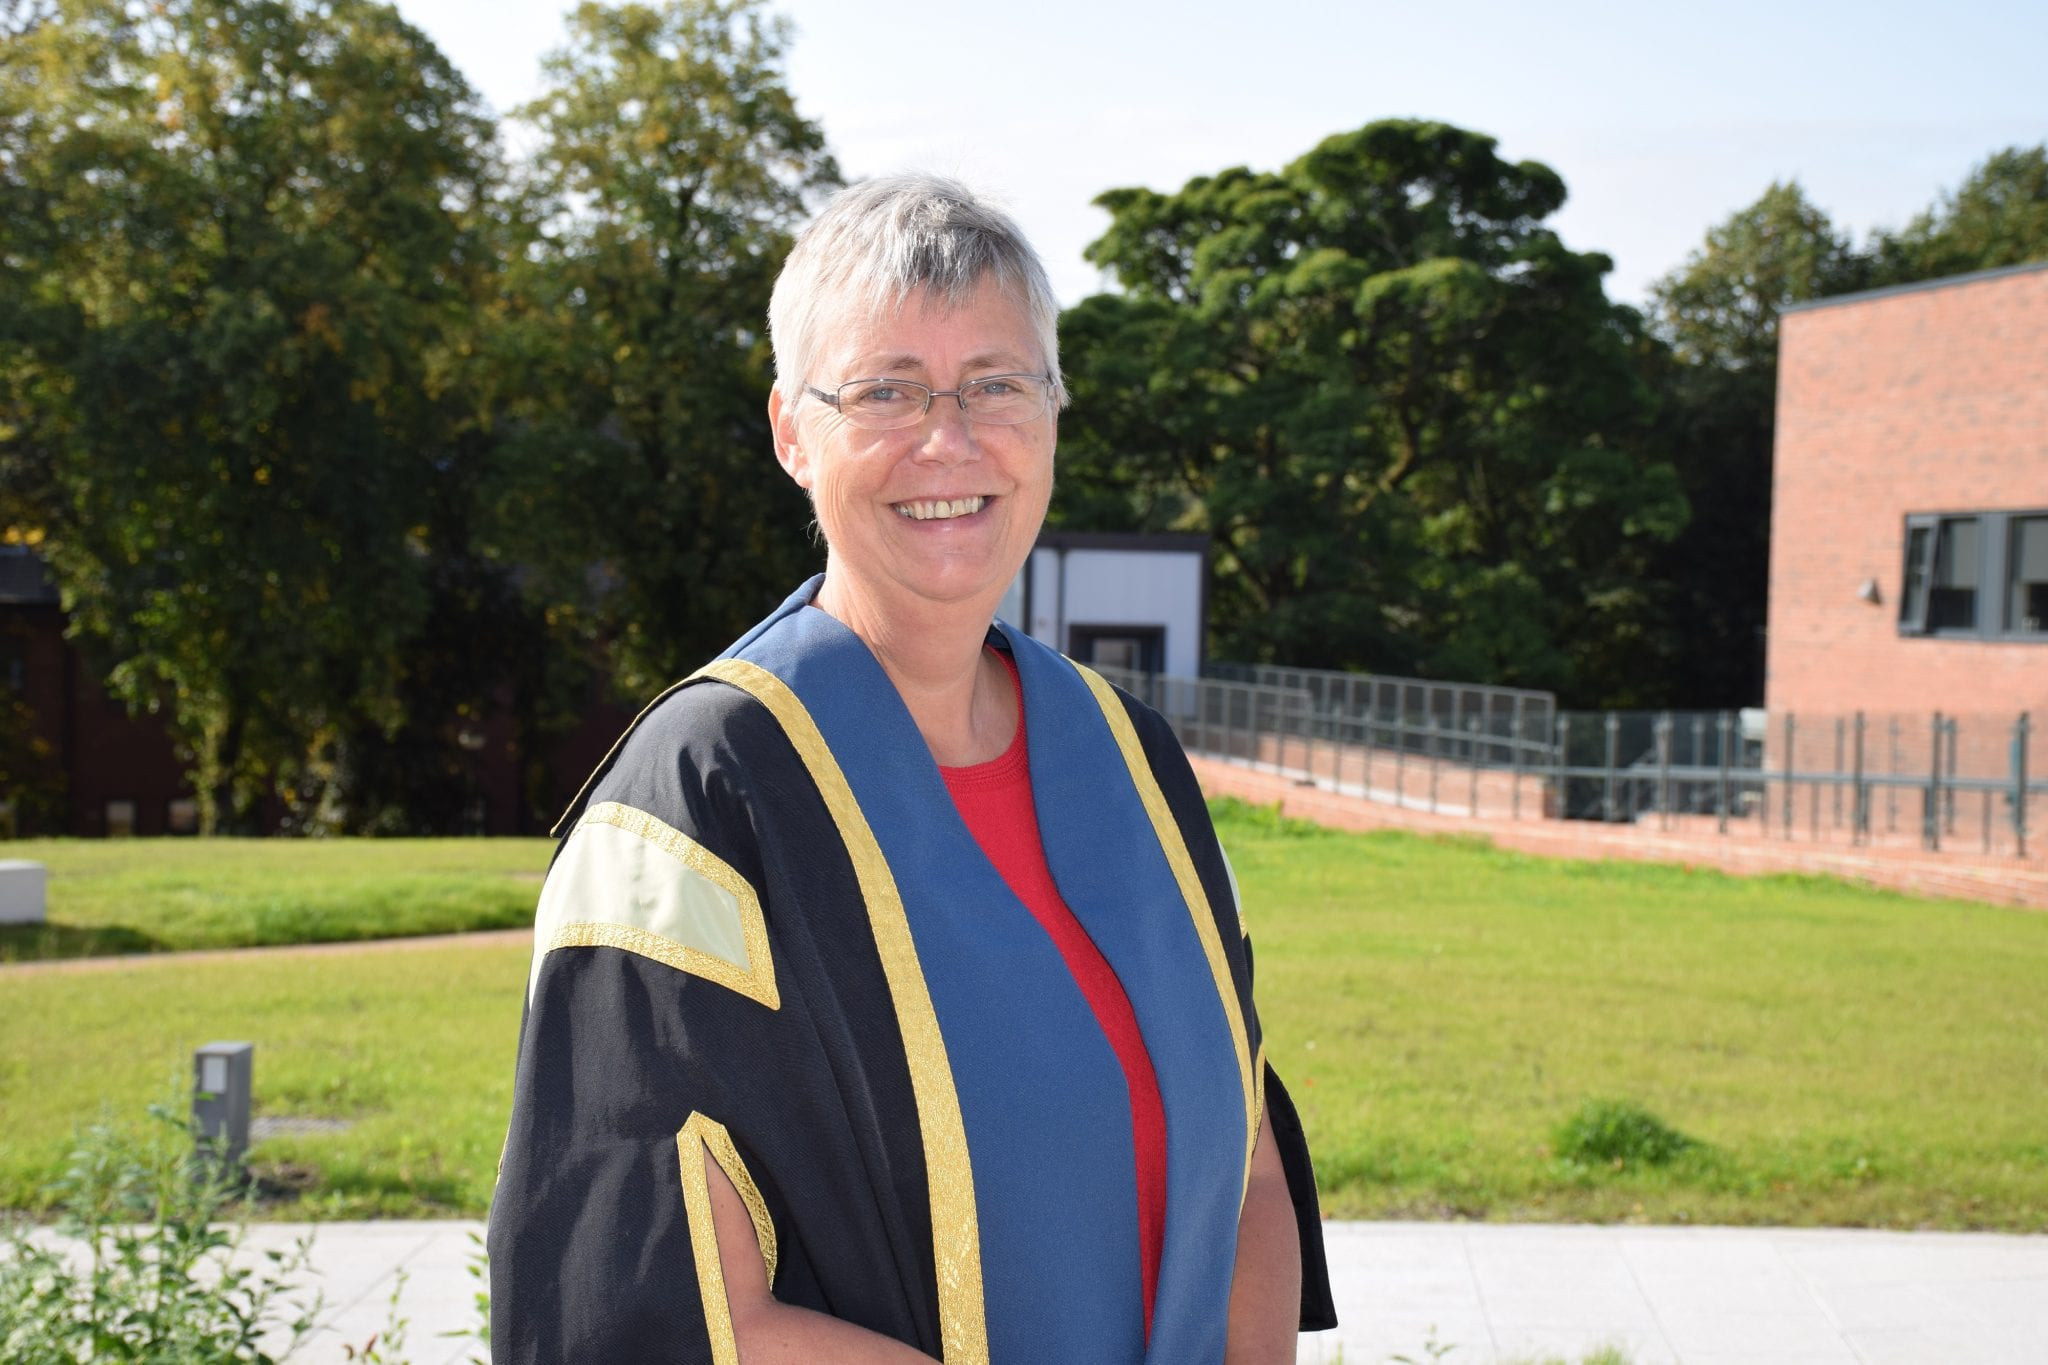 Charlotte Scheffmann, Dean of Higher Education at Nelson and Colne College University Centre